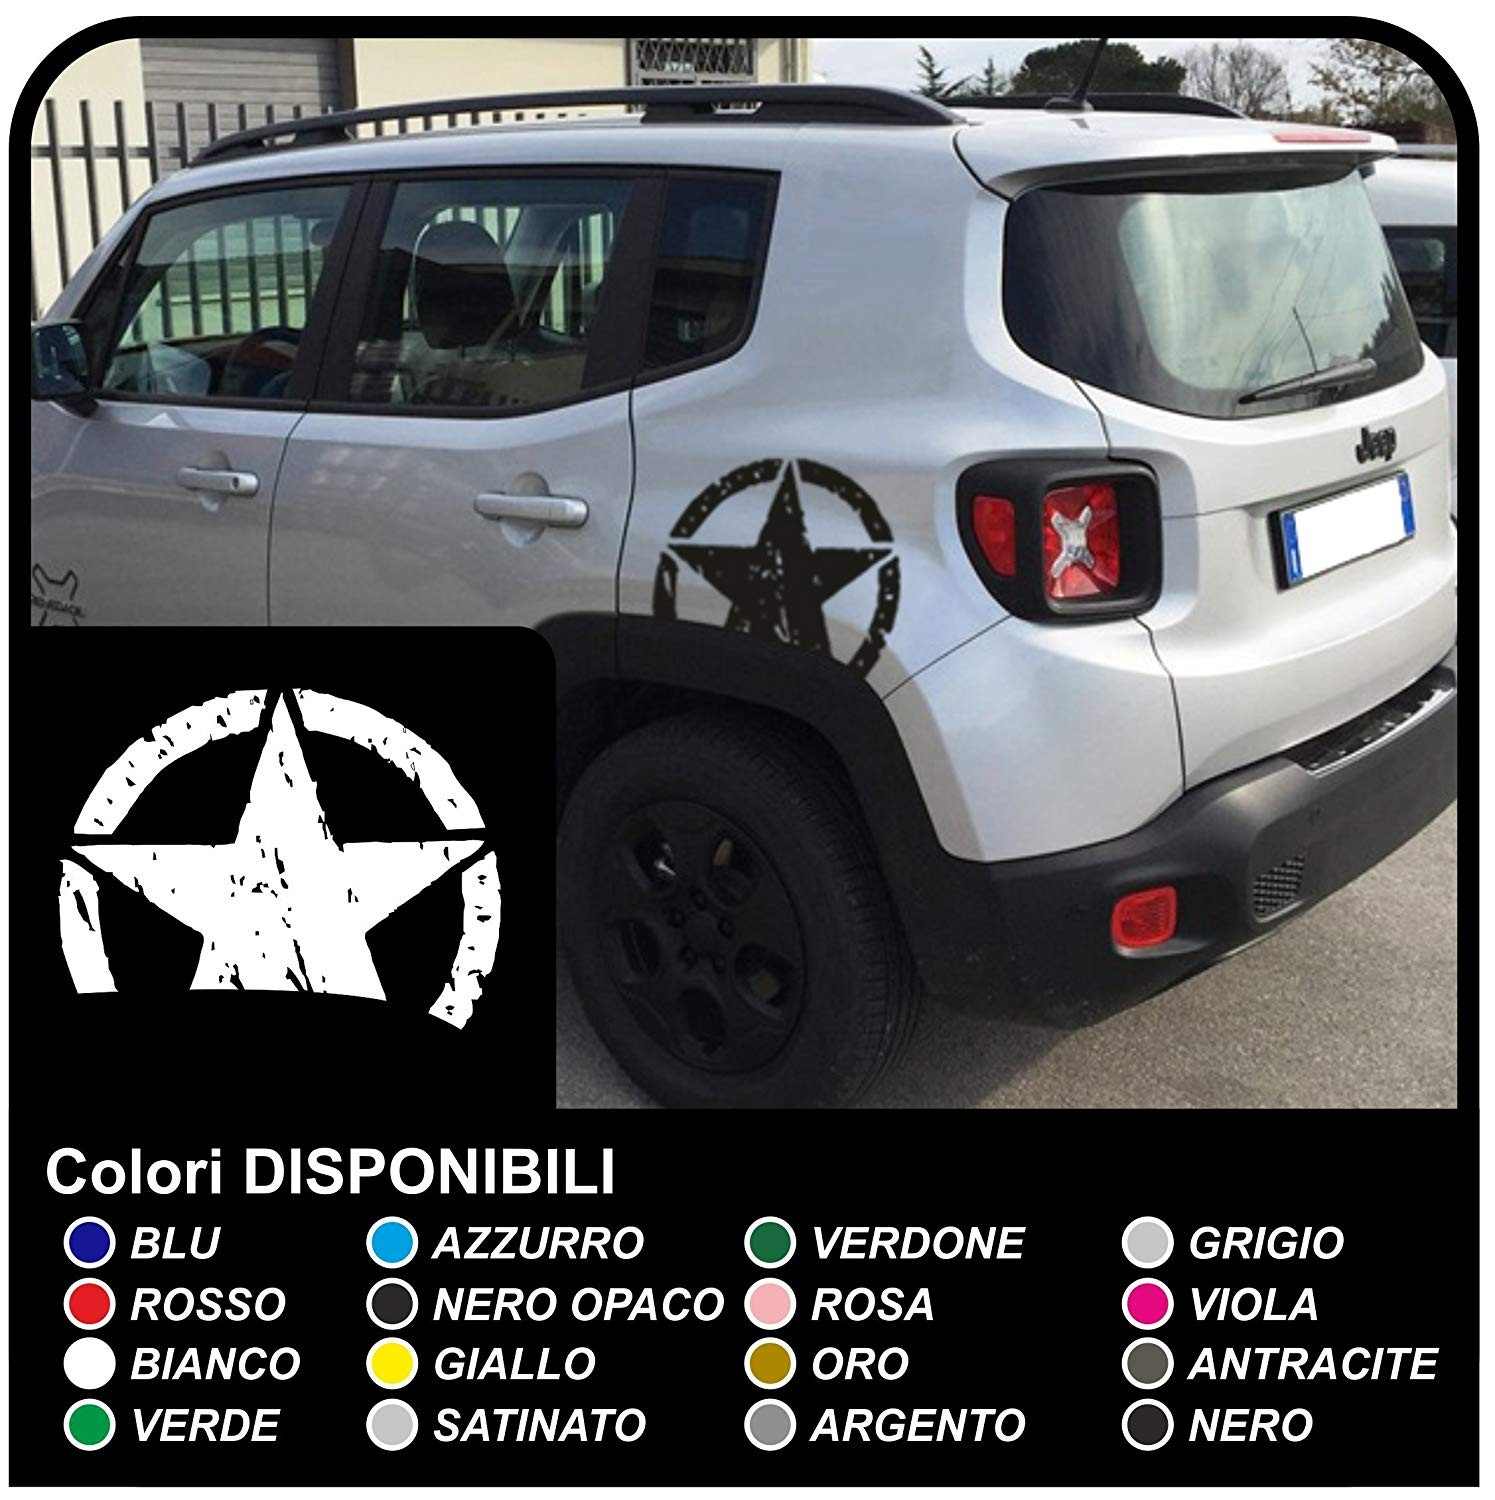 Stickers star broken for the rear jeep renegade worn effect stickers new jeep renegade top quality jpg